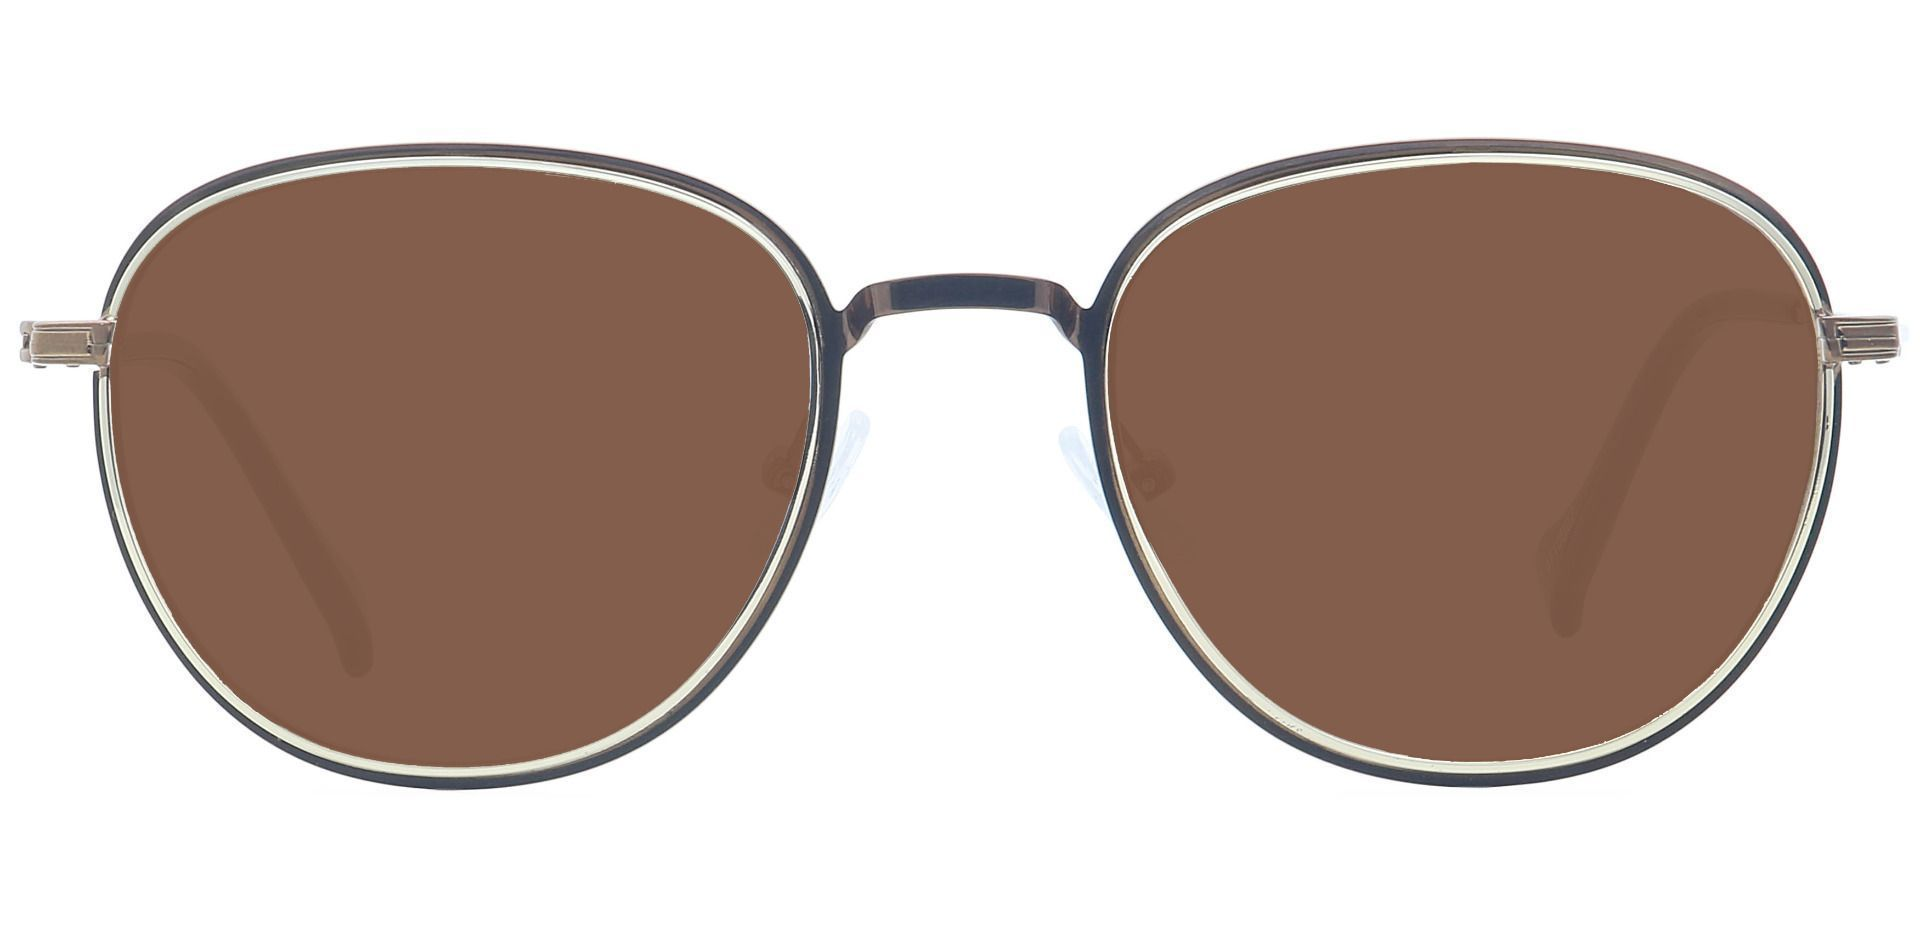 Foster Oval Prescription Sunglasses - Brown Frame With Brown Lenses